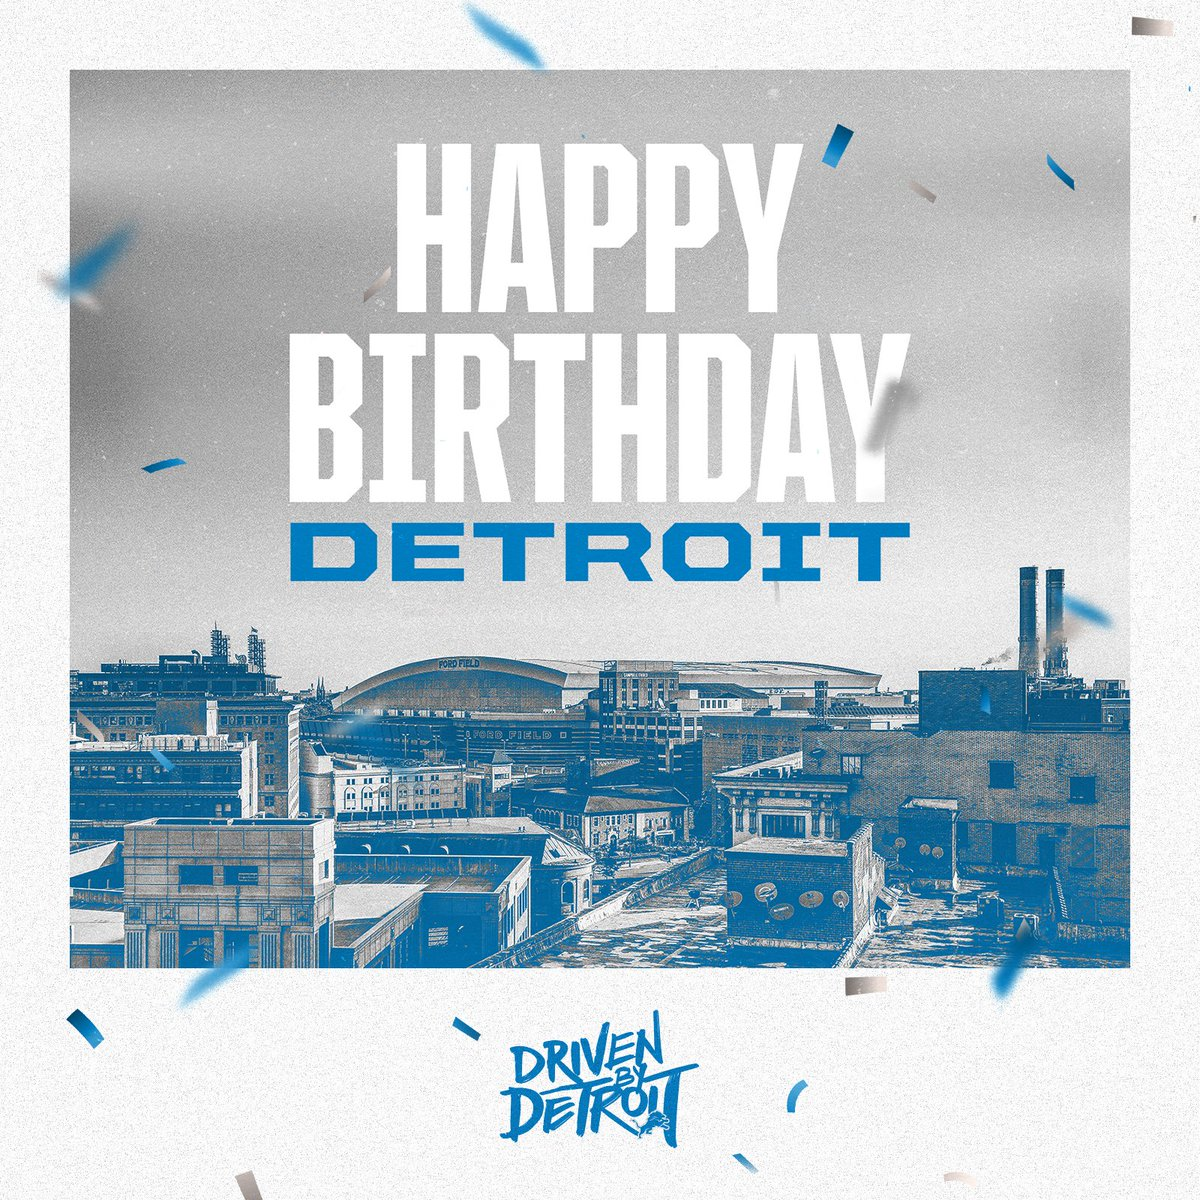 320 years never looked so good, @CityofDetroit! 🎂 https://t.co/w1JF2WQddr